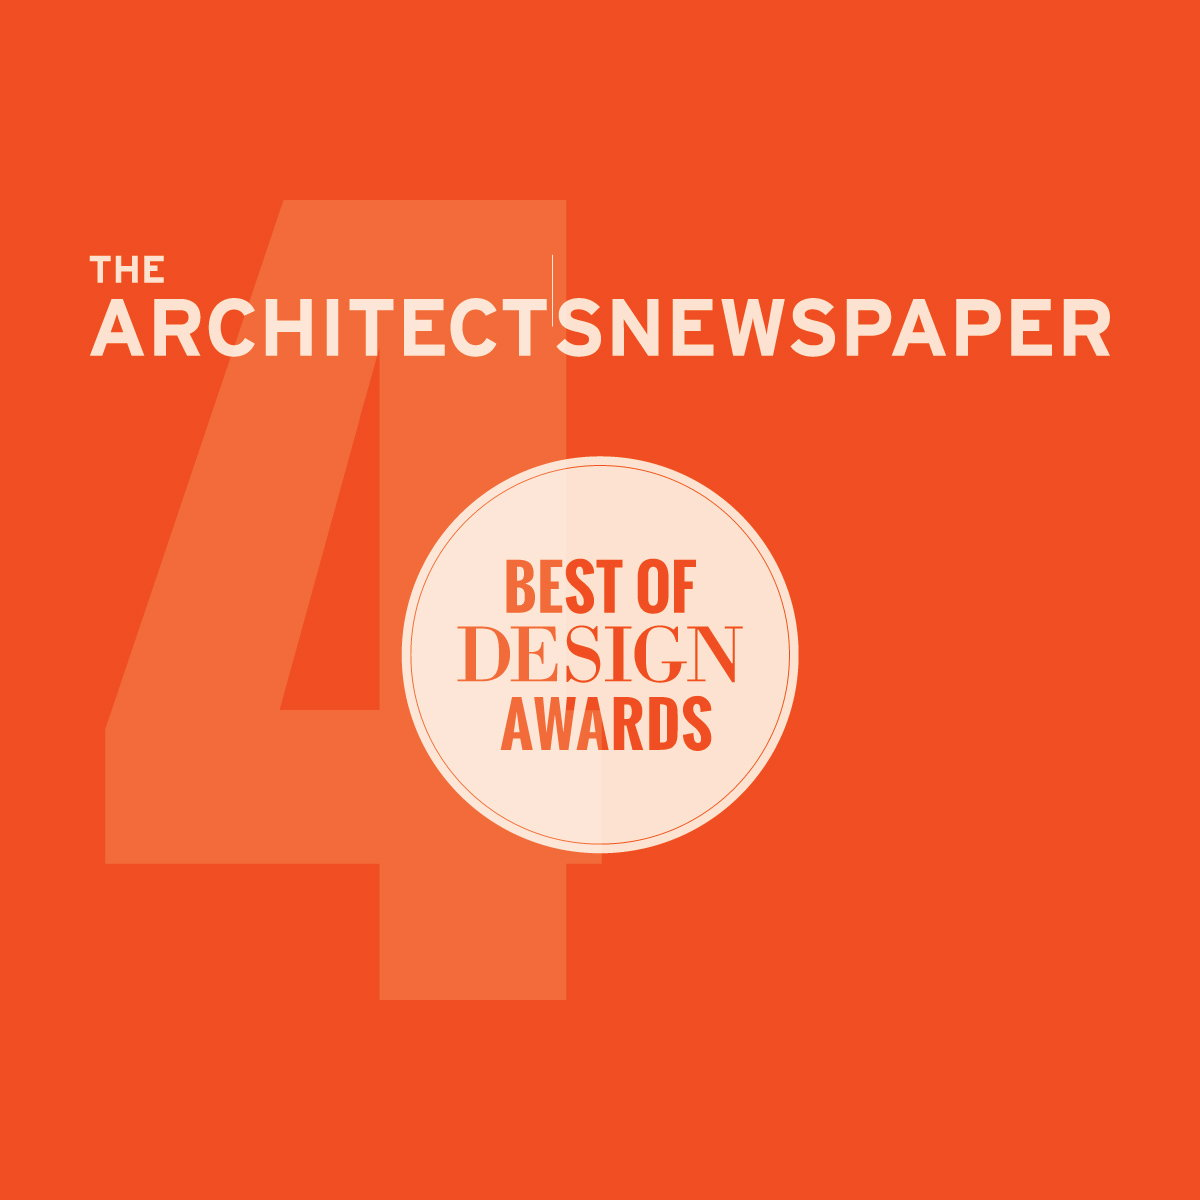 The Architect's Newspaper 4th Annual Best of Design Awards